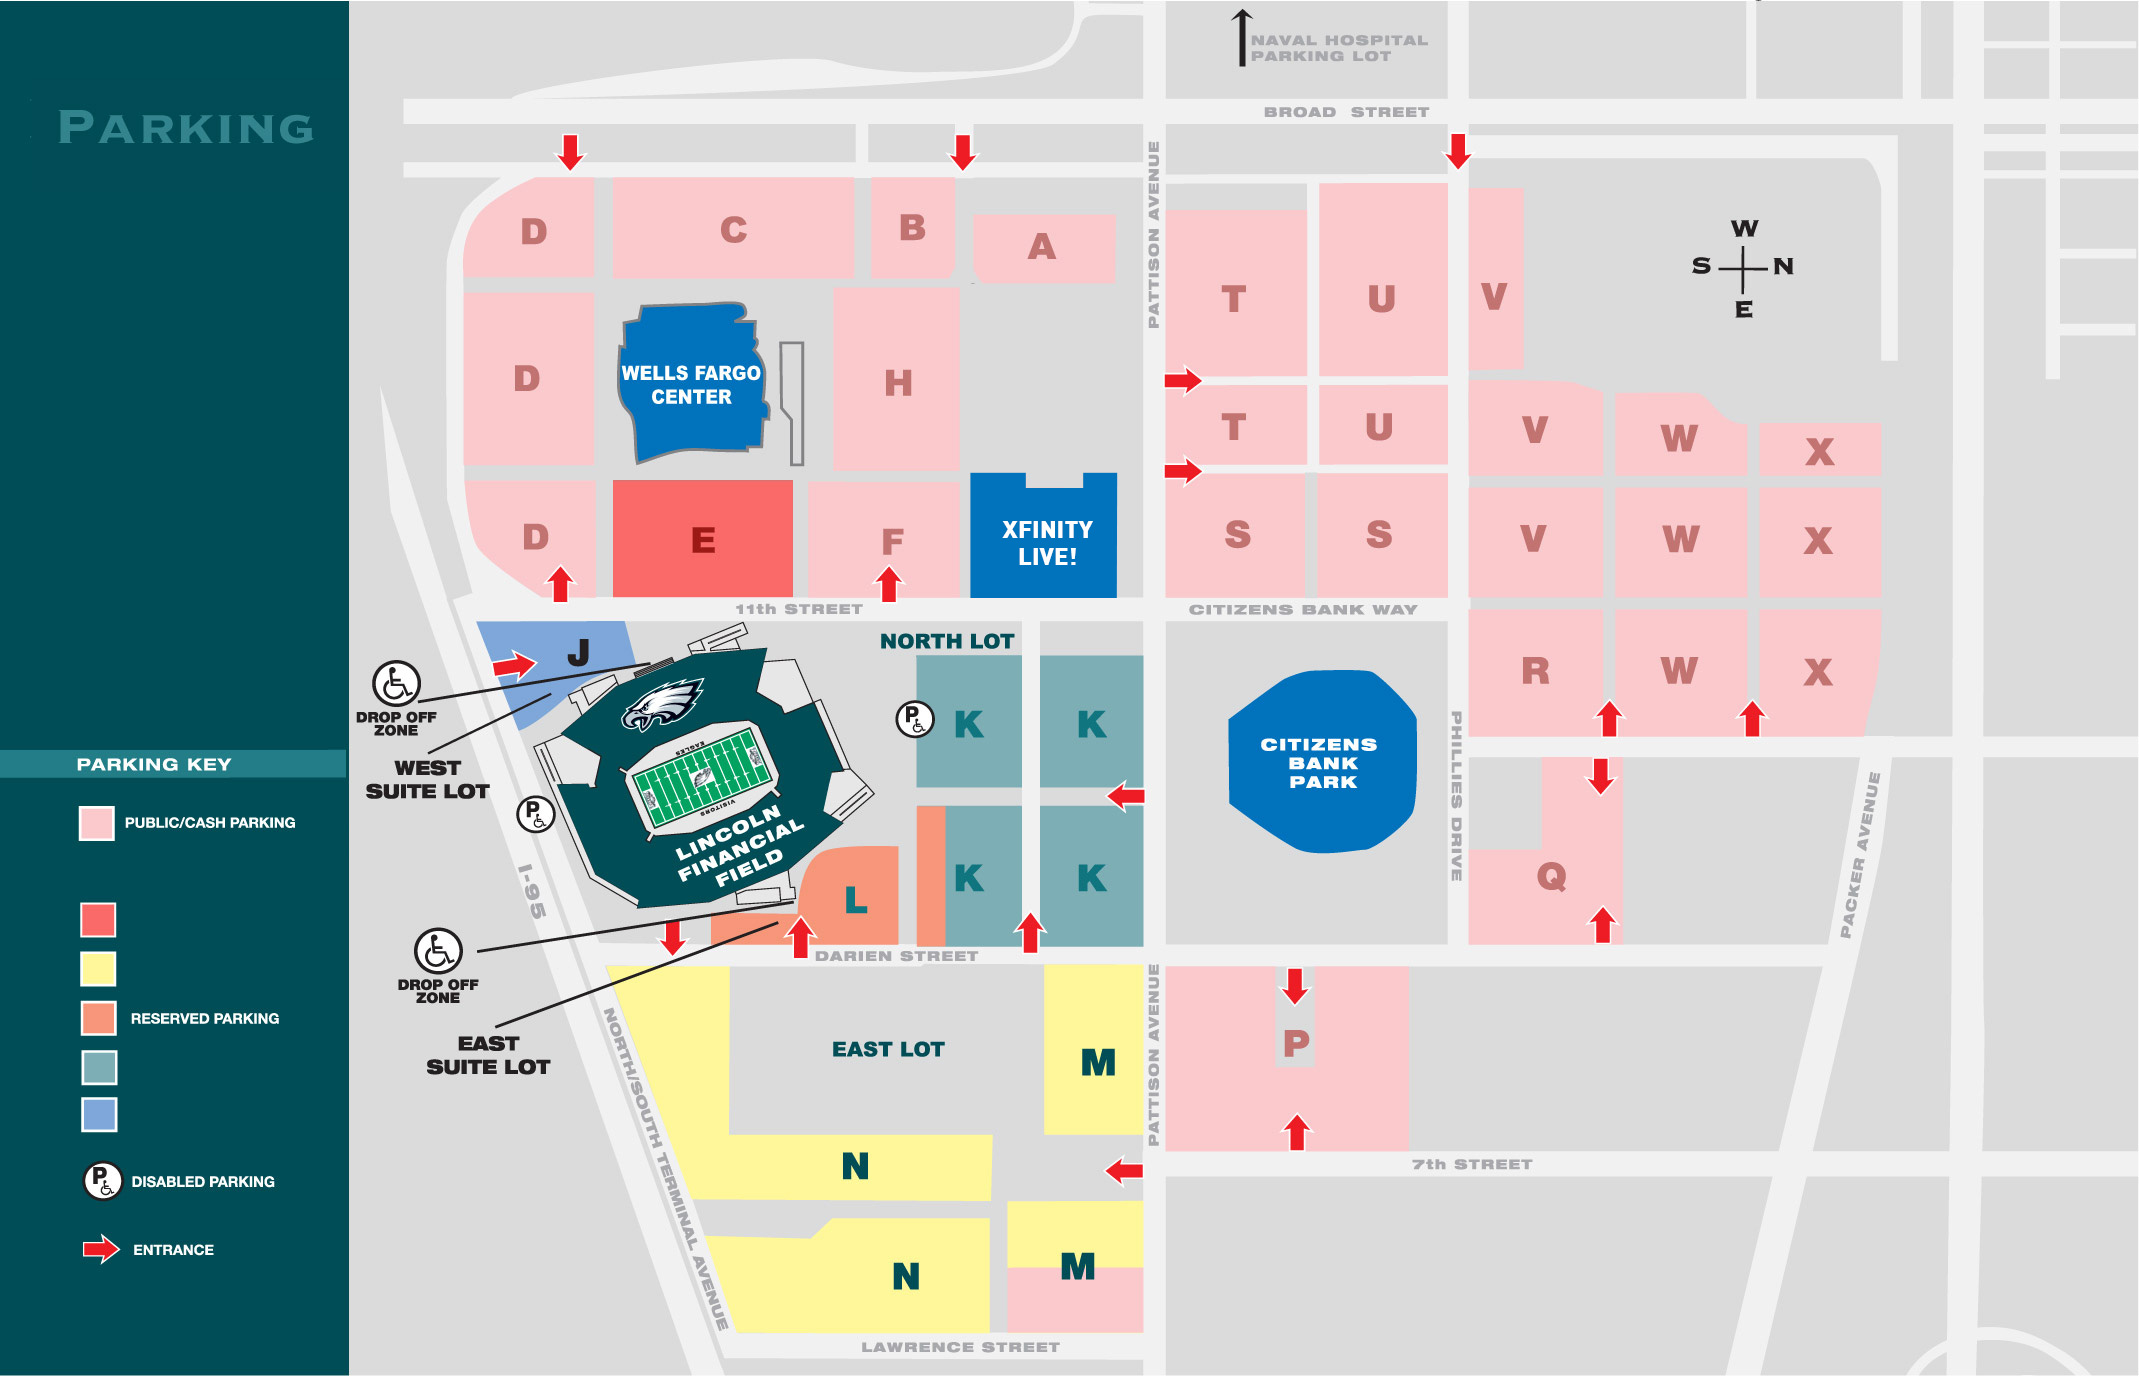 Philadelphia Eagles Parking Lots Map at Lincoln Financial Field